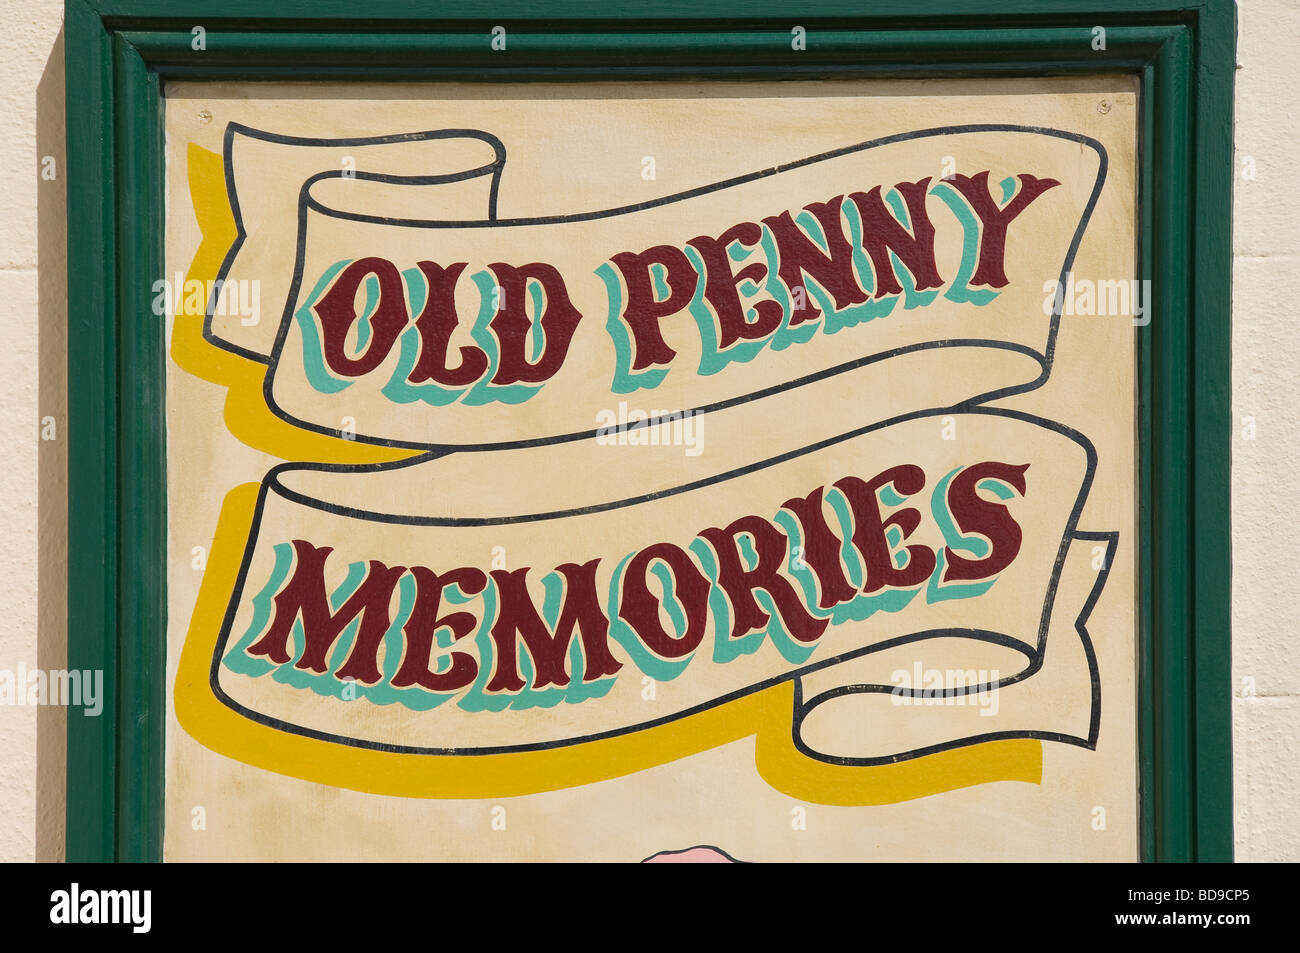 Old penny memories sign outside a museum Bridlington East Yorkshire England UK United Kingdom GB Great Britain - Stock Image